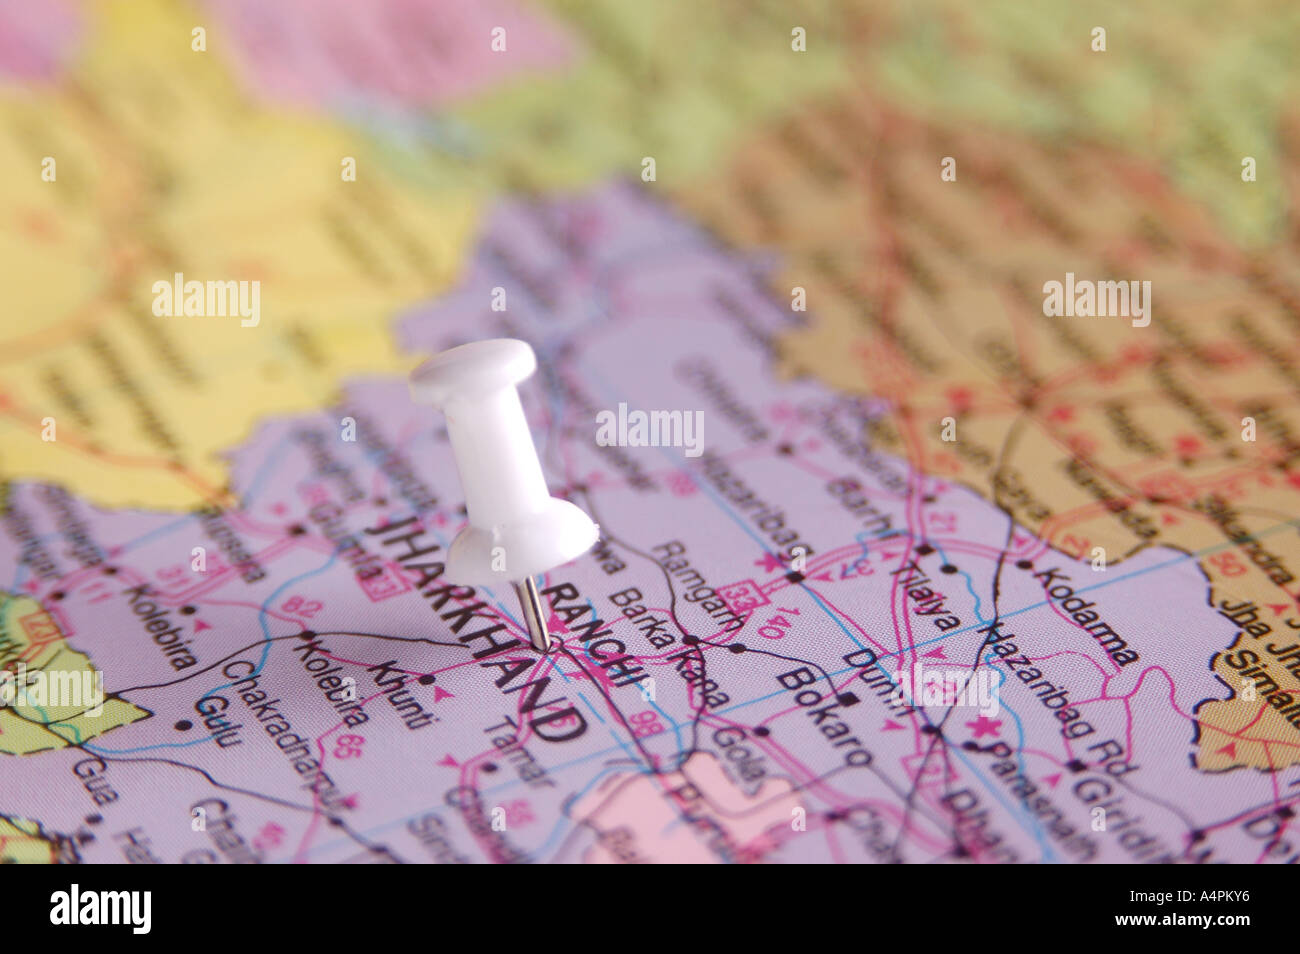 Ranchi In India Map.Ang77818 Map Of India Spotted Ranchi Capital Of Jharkhand By White